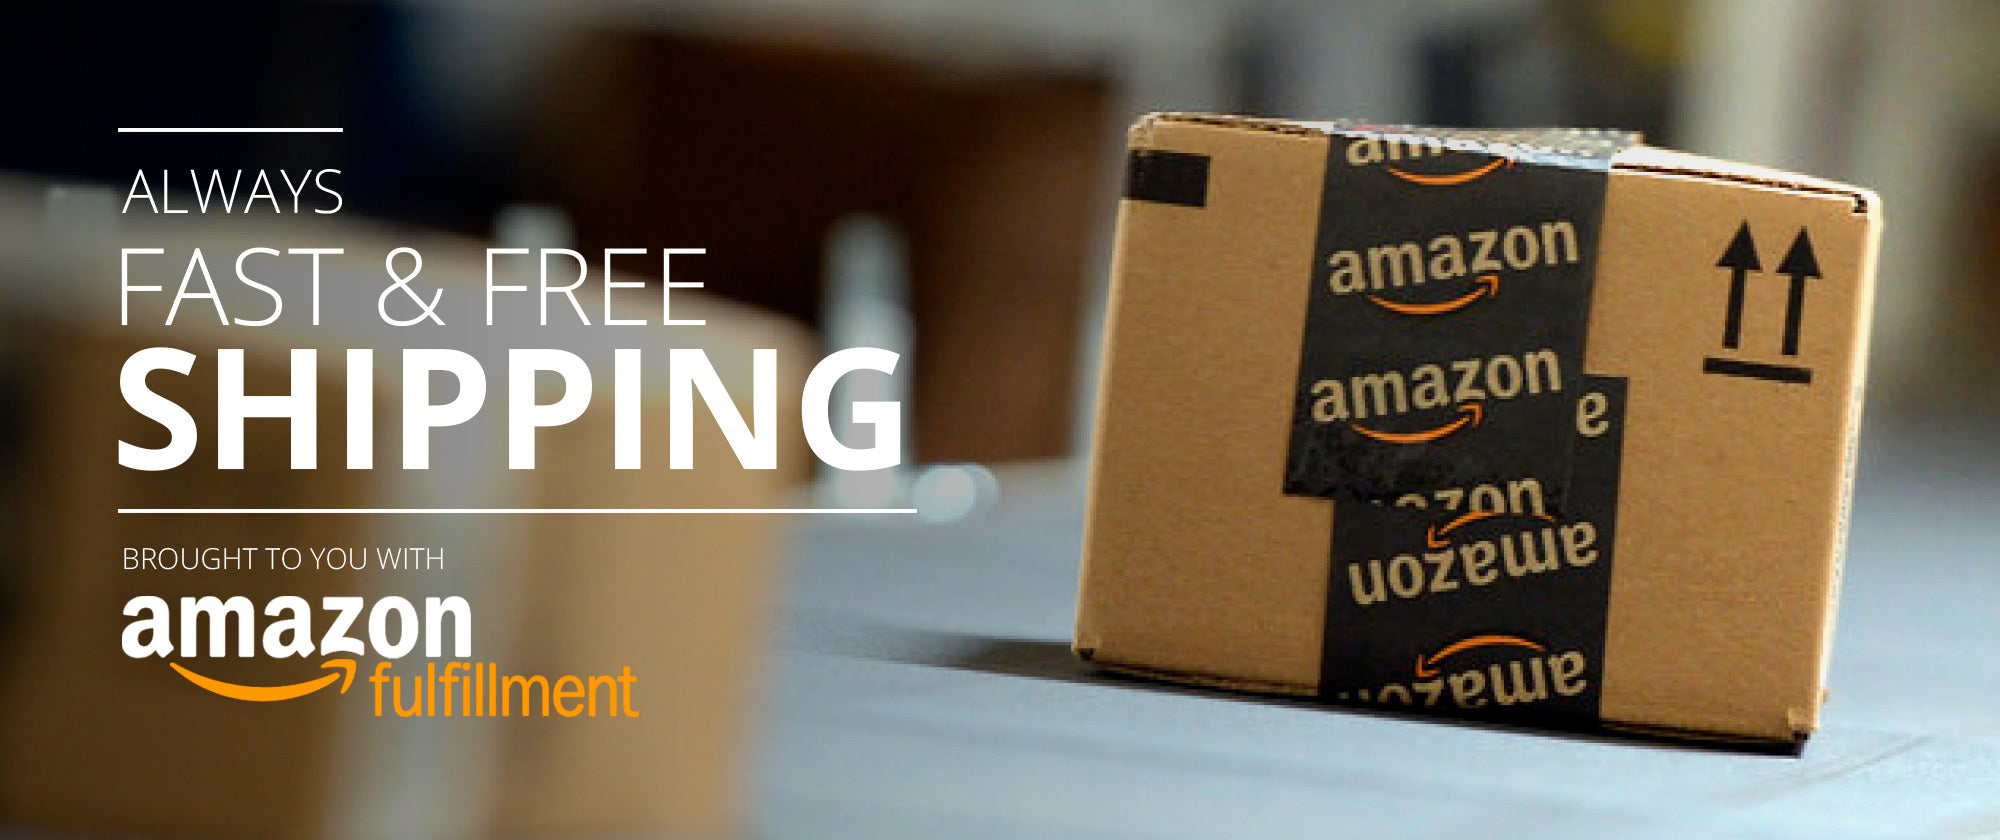 Fast Free Shipping, Always.